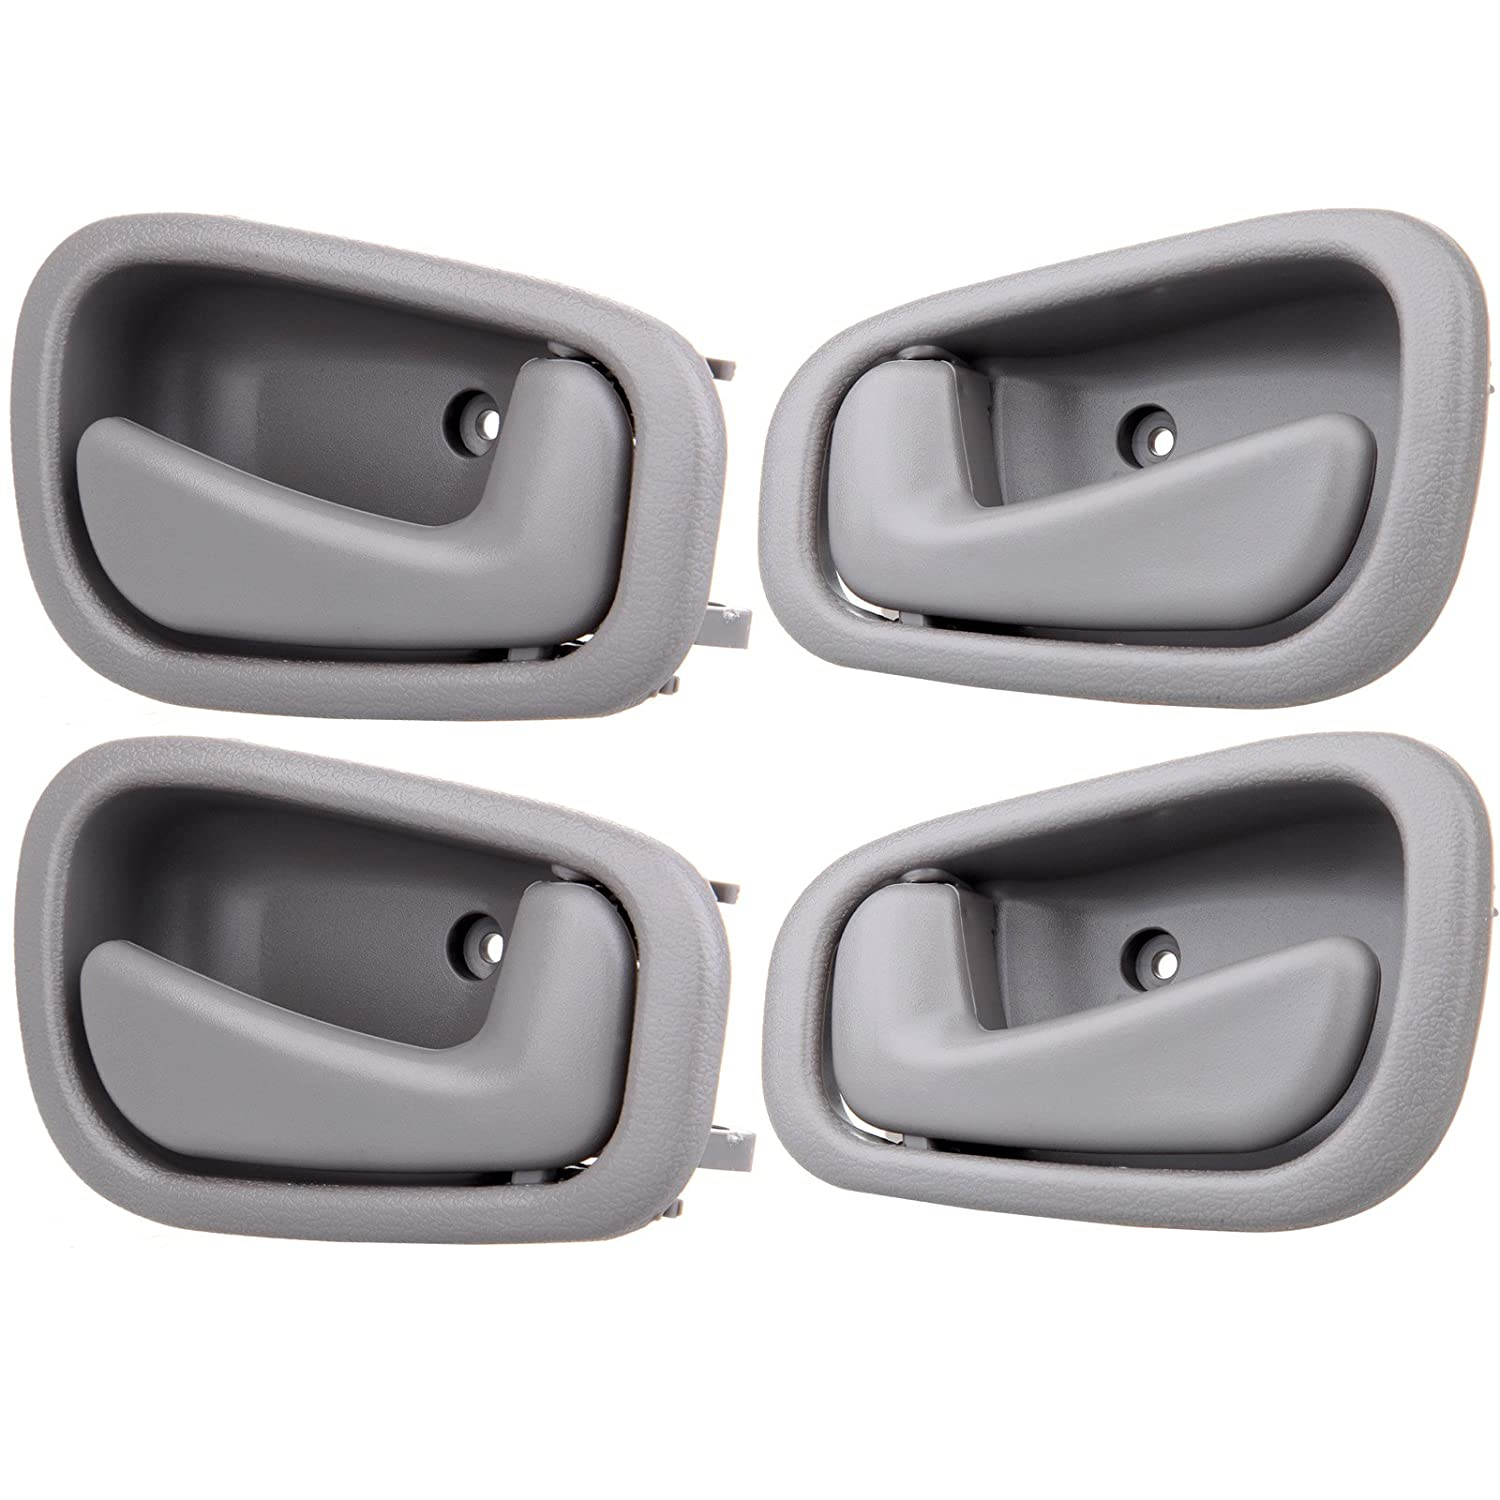 ECCPP Door Handles Interior Inside Inner Front Rear Passenger Driver side for 1998 1999 2000 2001 2002 Toyota Corolla Gray 802181-5211-1702331 4pcs